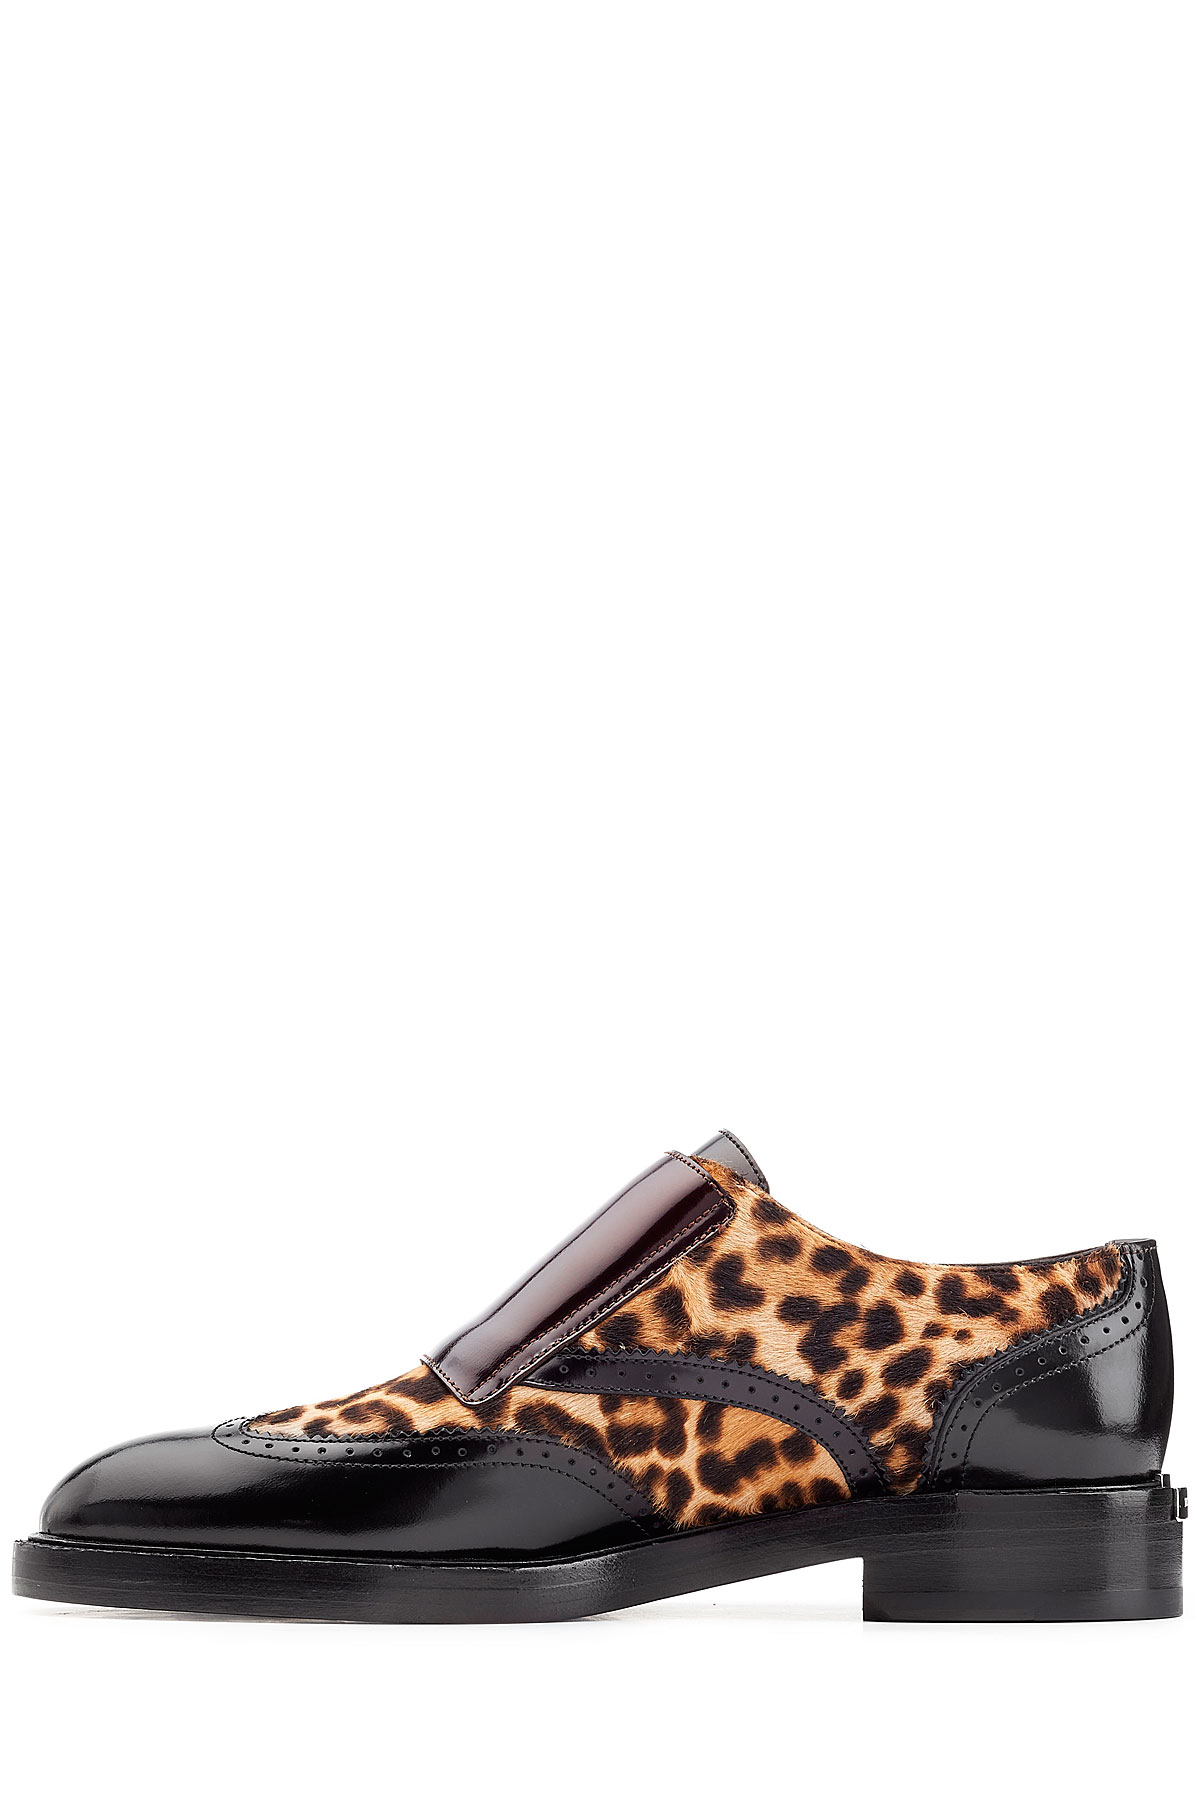 c60b1a0f66b Burberry Leather Loafers With Leopard Printed Calf Hair - Animal ...